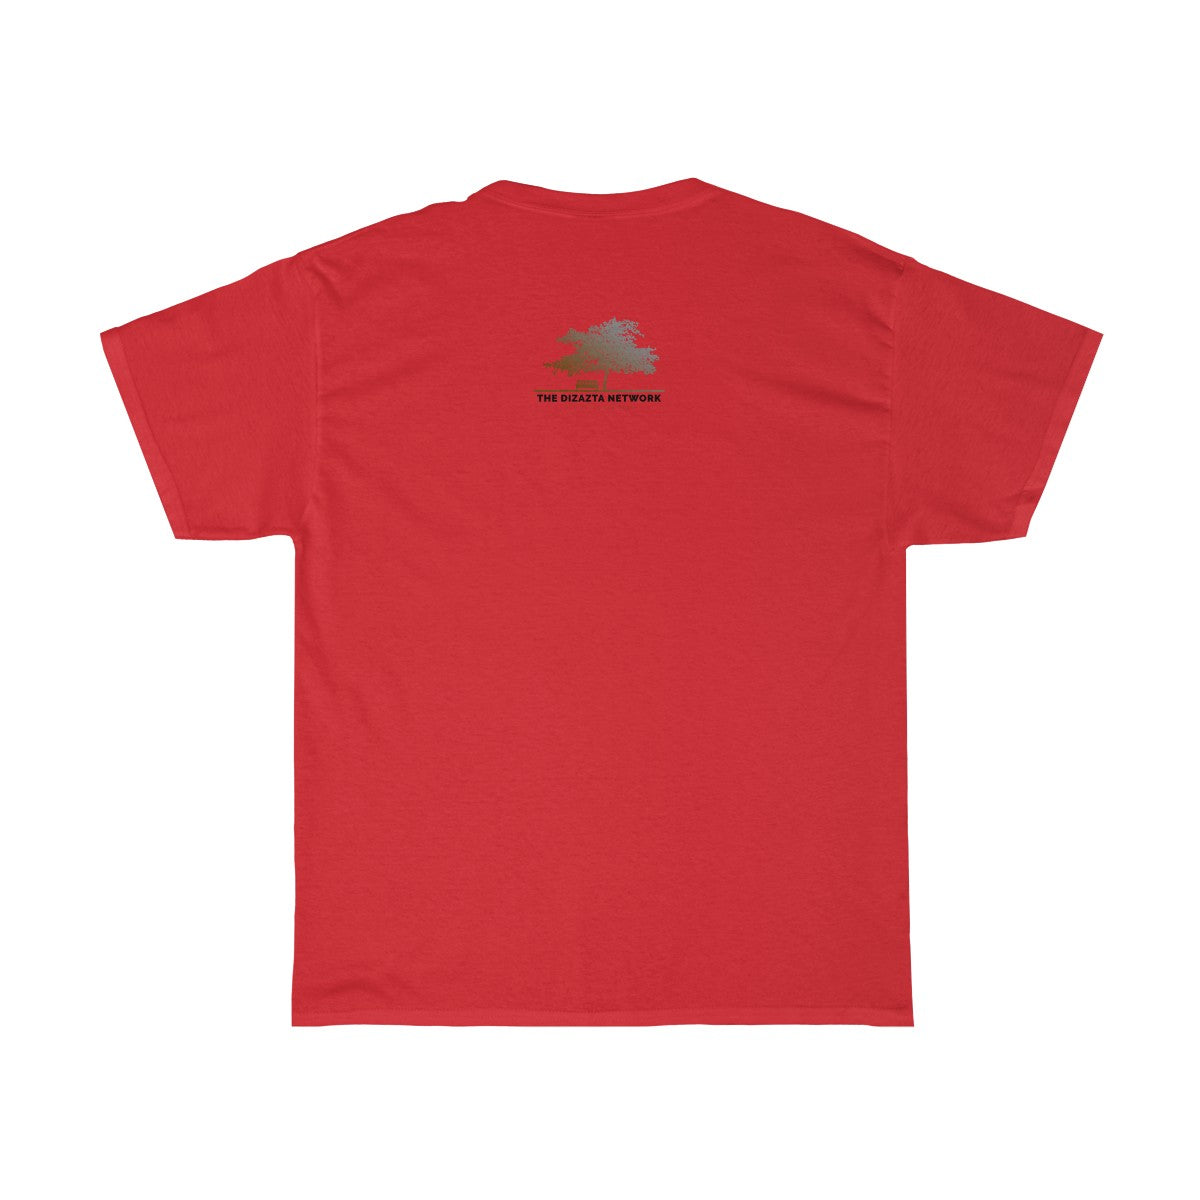 TDE 0508 Unisex Heavy Cotton Tee